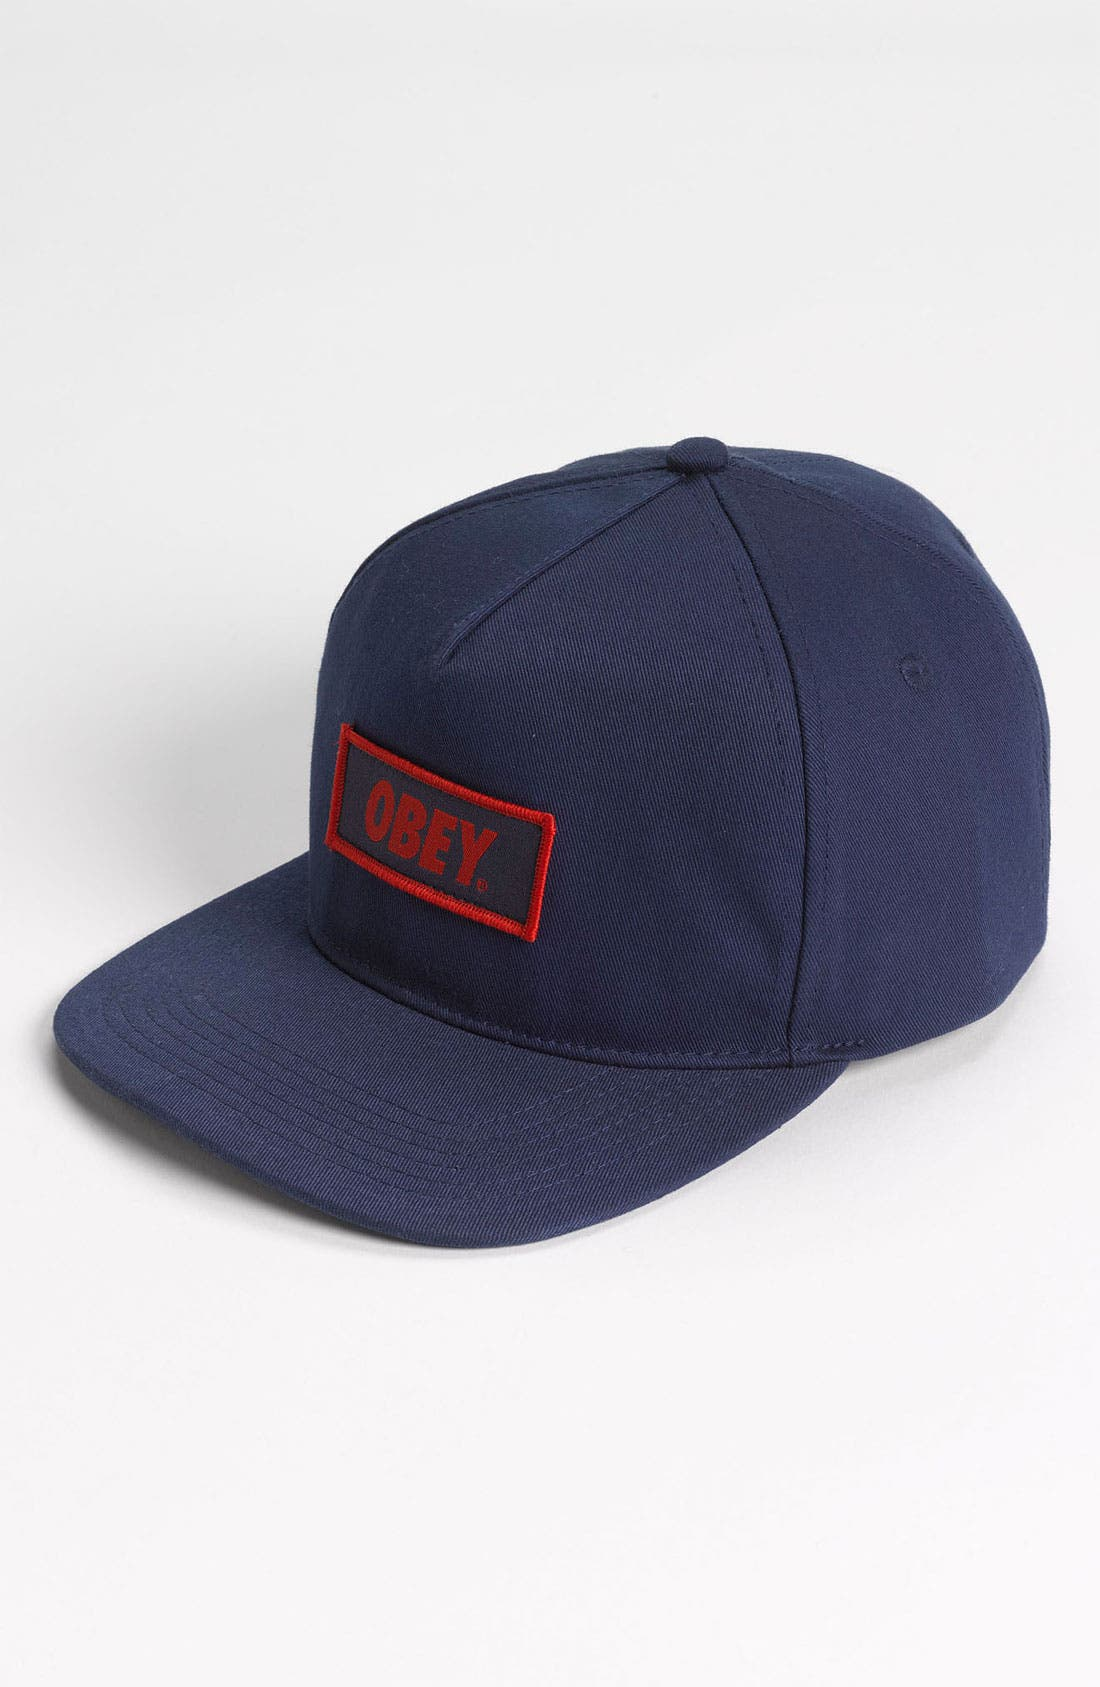 Main Image - Obey 'New Original' Snapback Hat